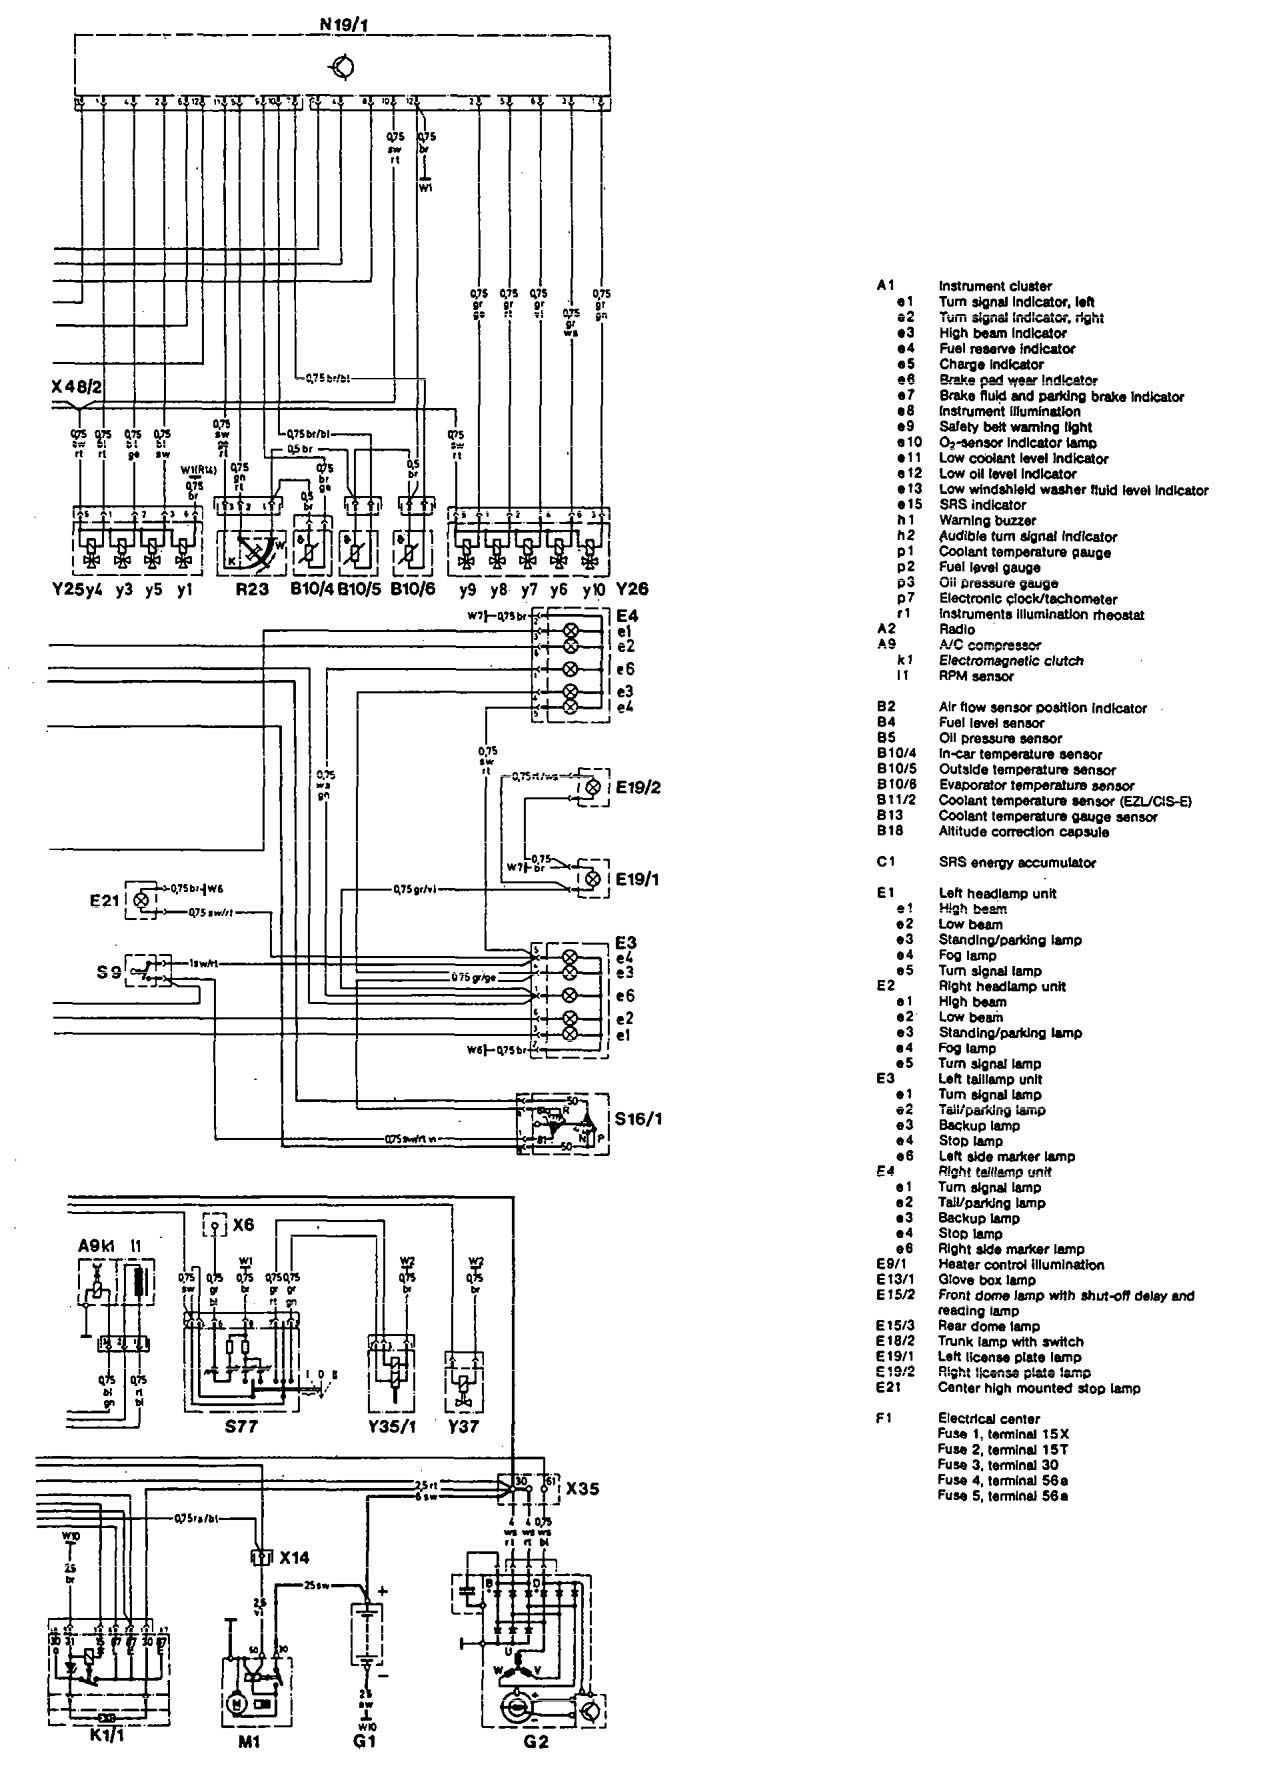 mercedes benz e320 fuse box location